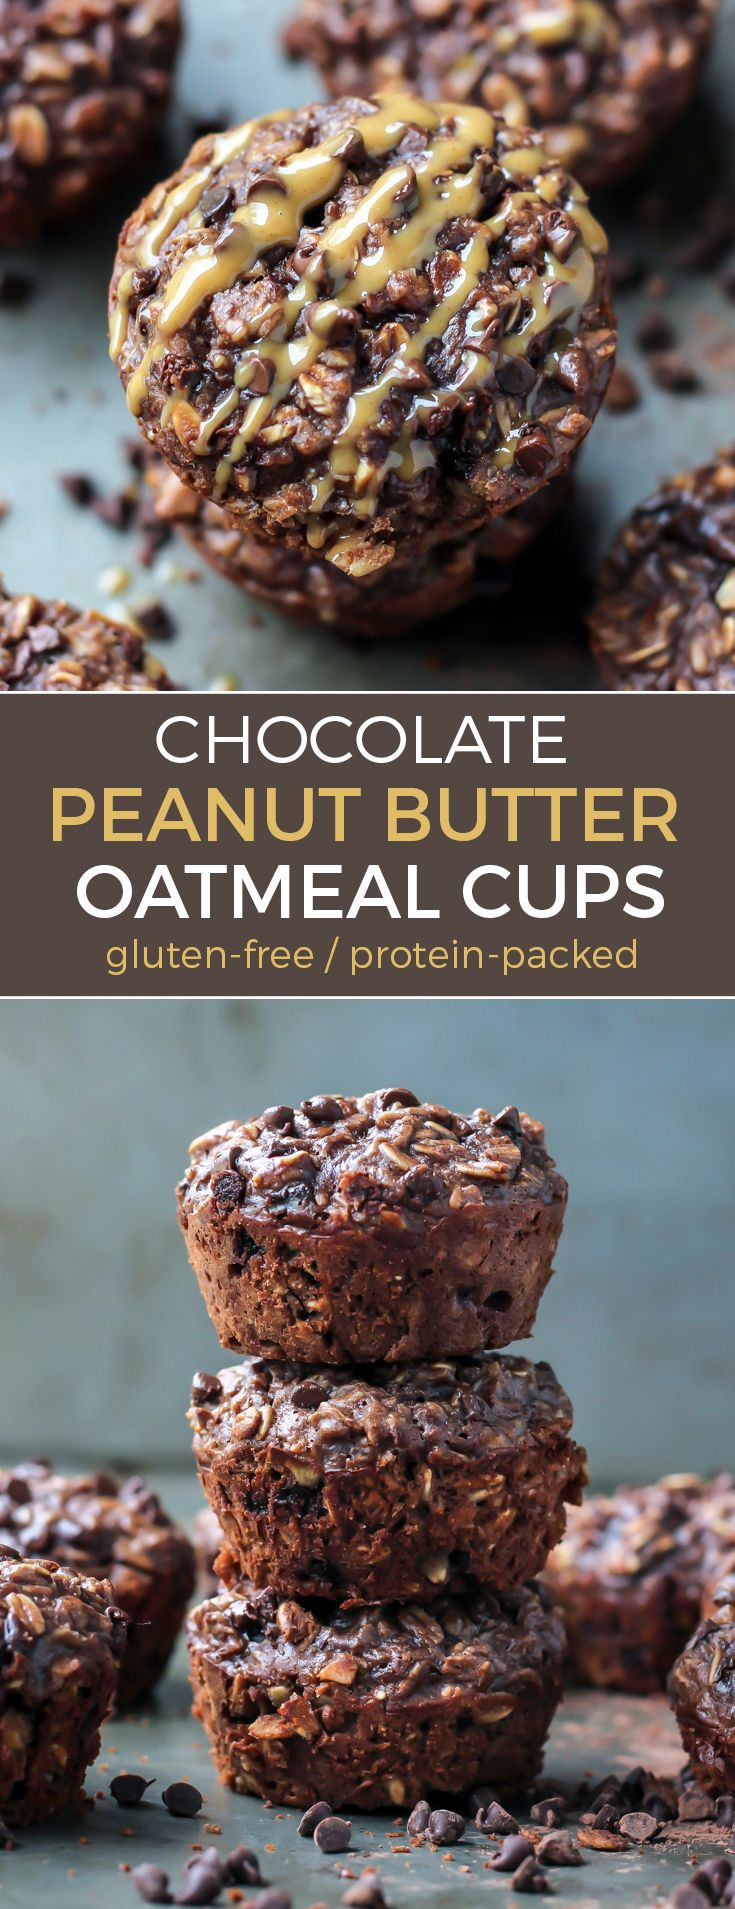 Chocolate Peanut Butter Baked Oatmeal Cups with protein!